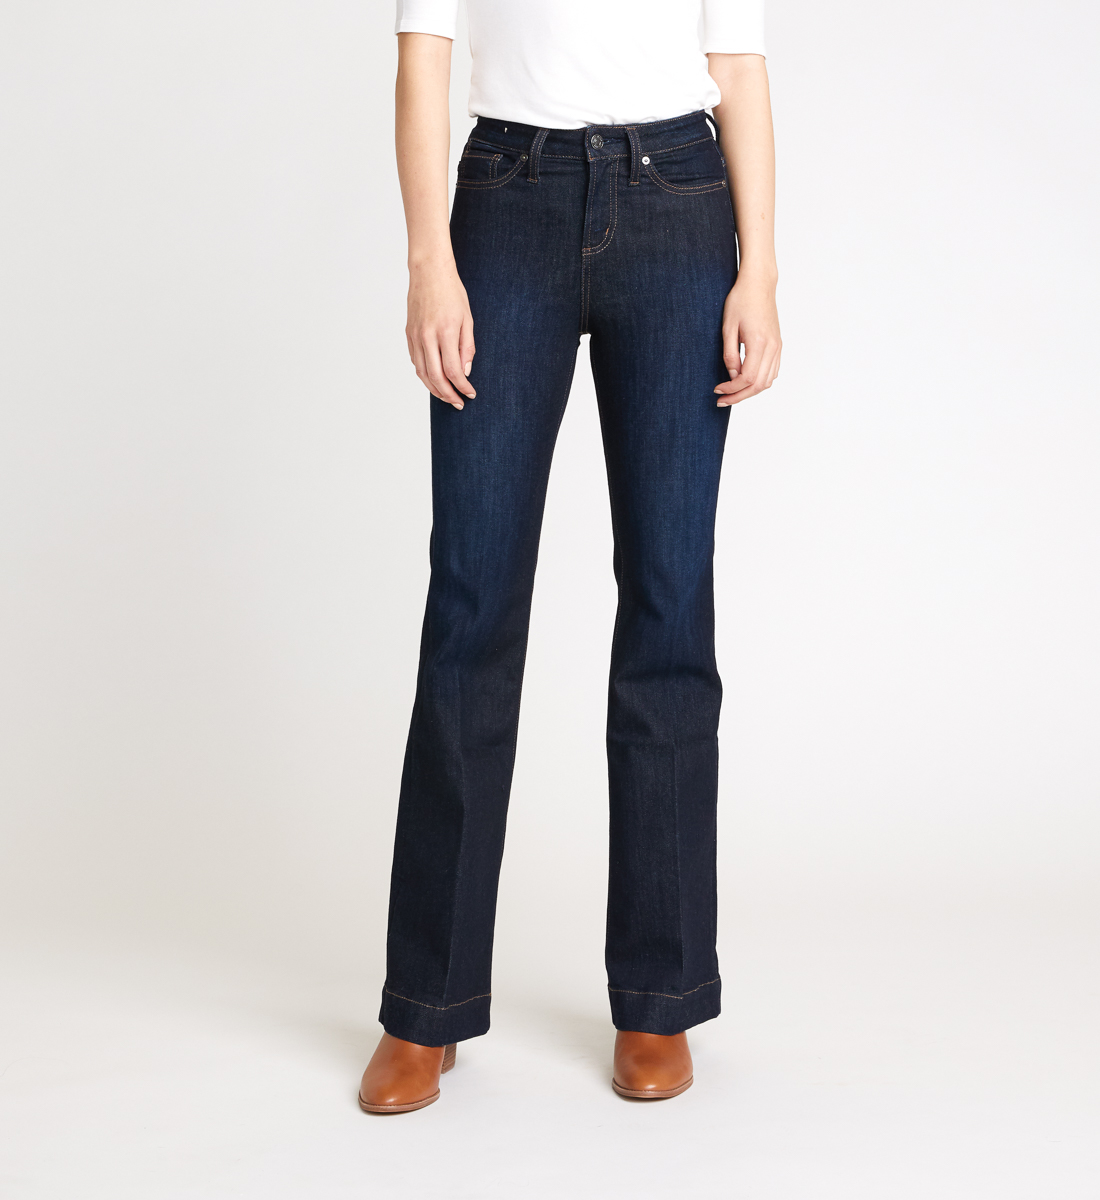 Silver Jeans High Note High-Rise Trouser Jeans